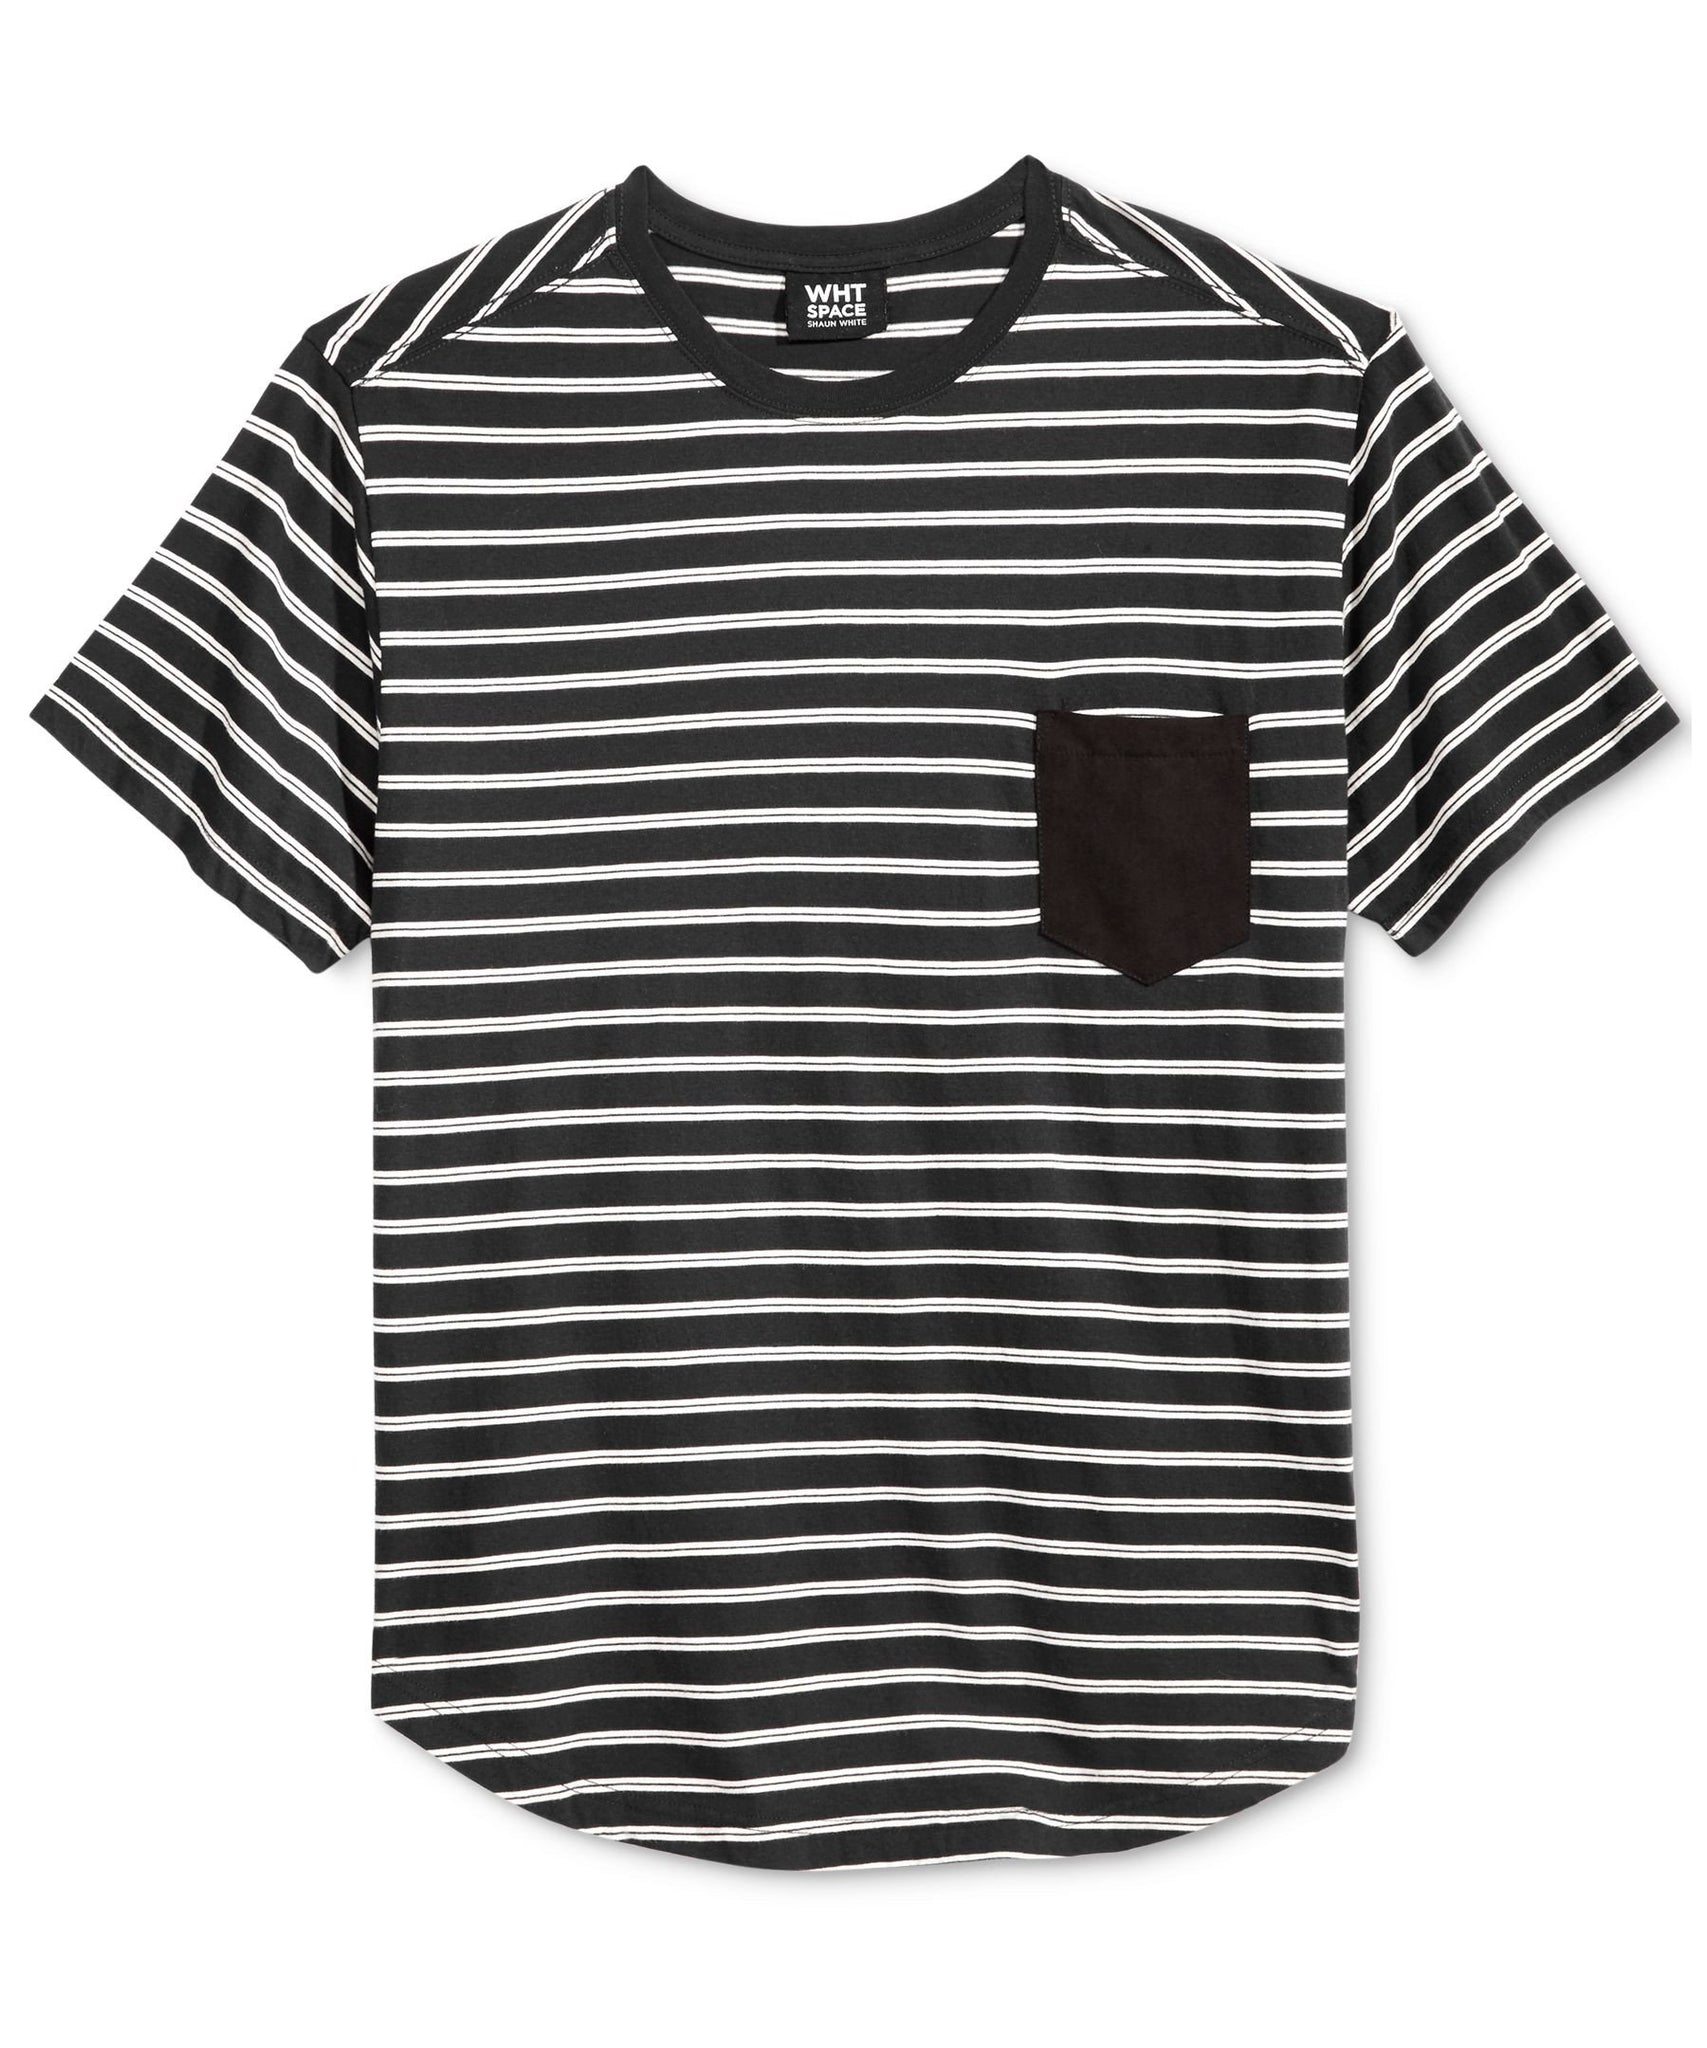 WHT SPACE by Shaun White Men's Soho Stripe T-Shirt